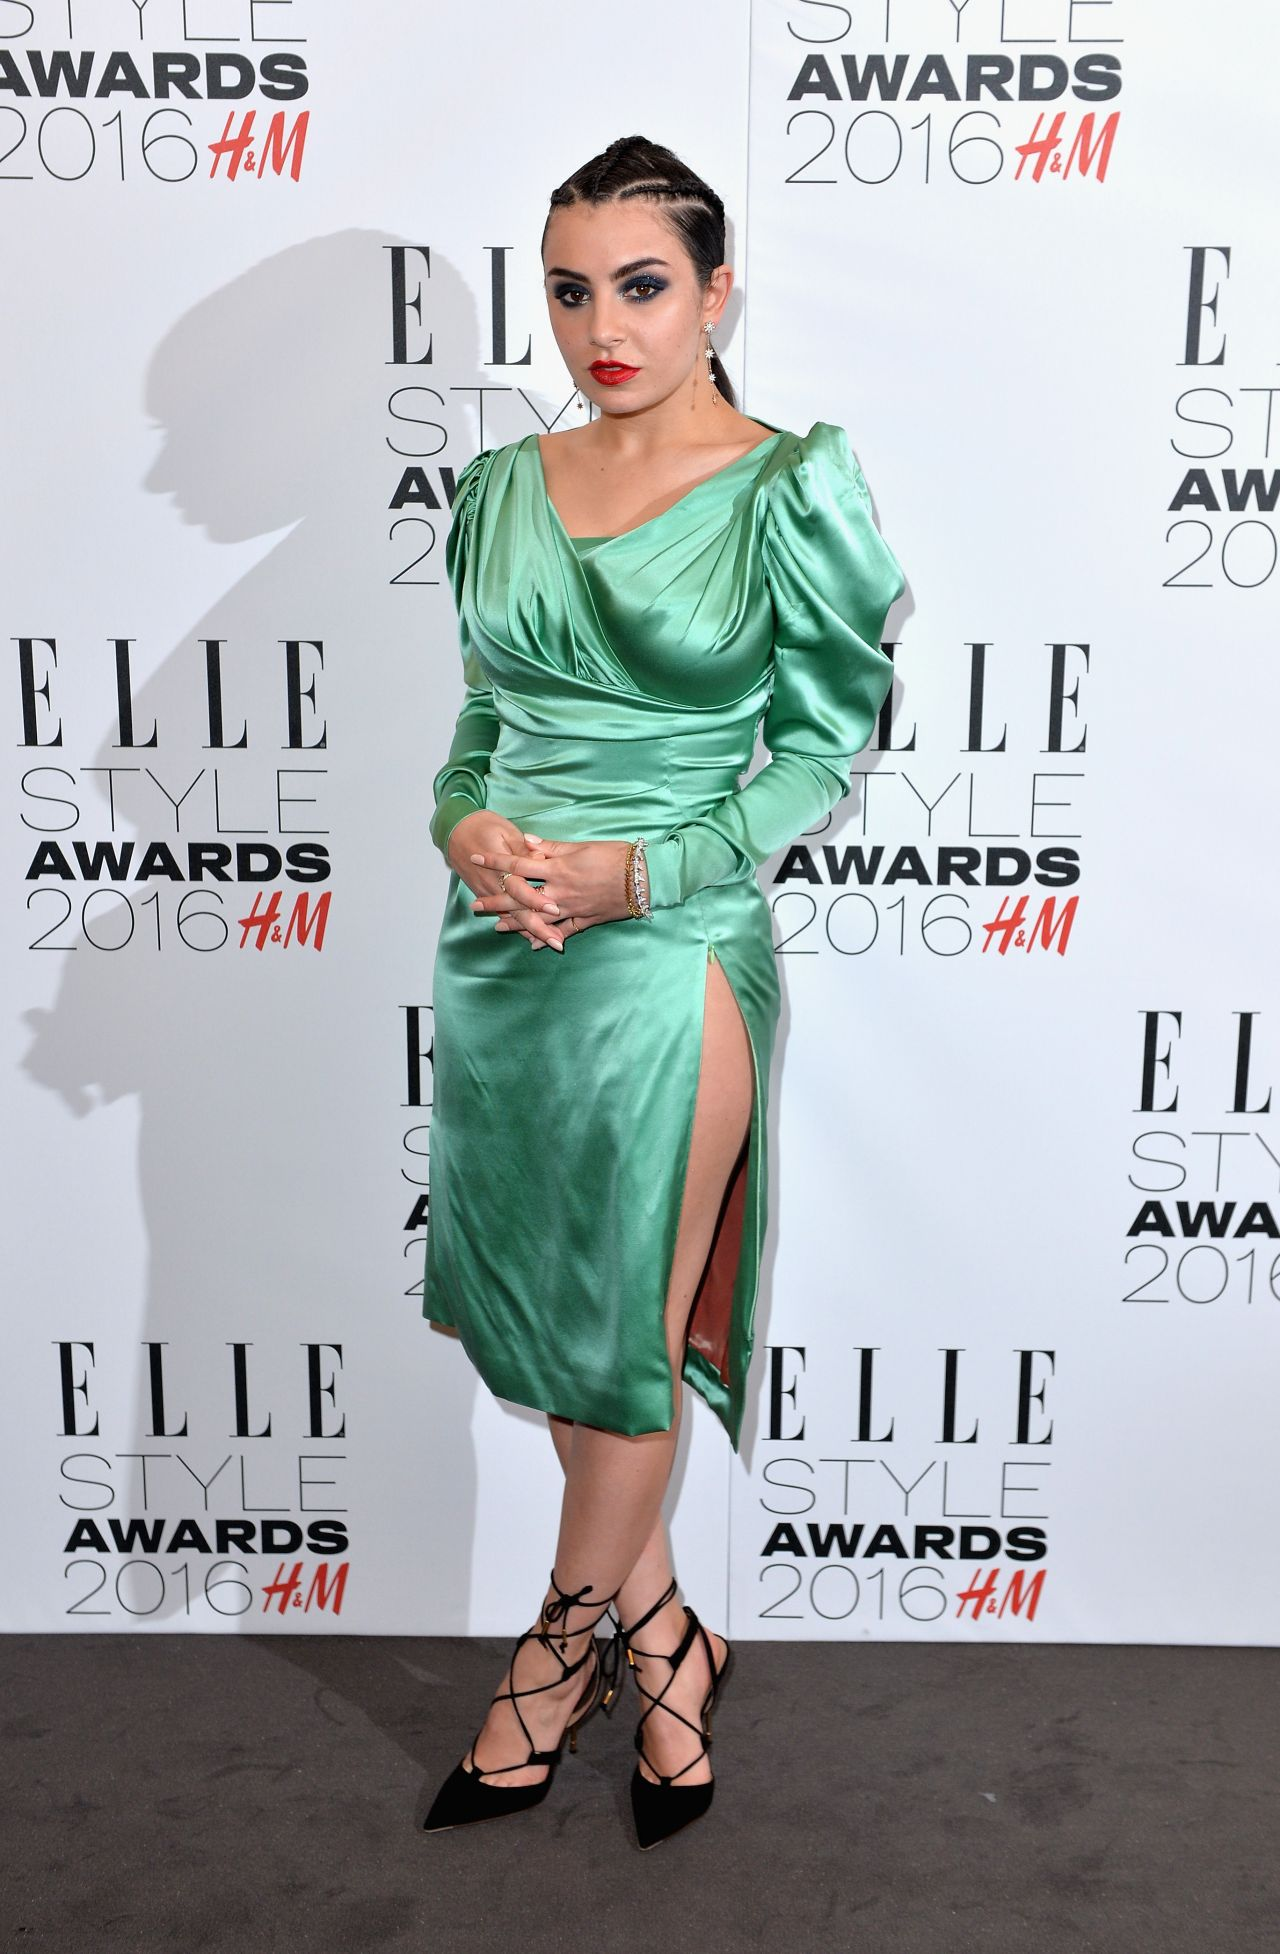 charli-xcx-elle-style-awards-2016-in-london-2